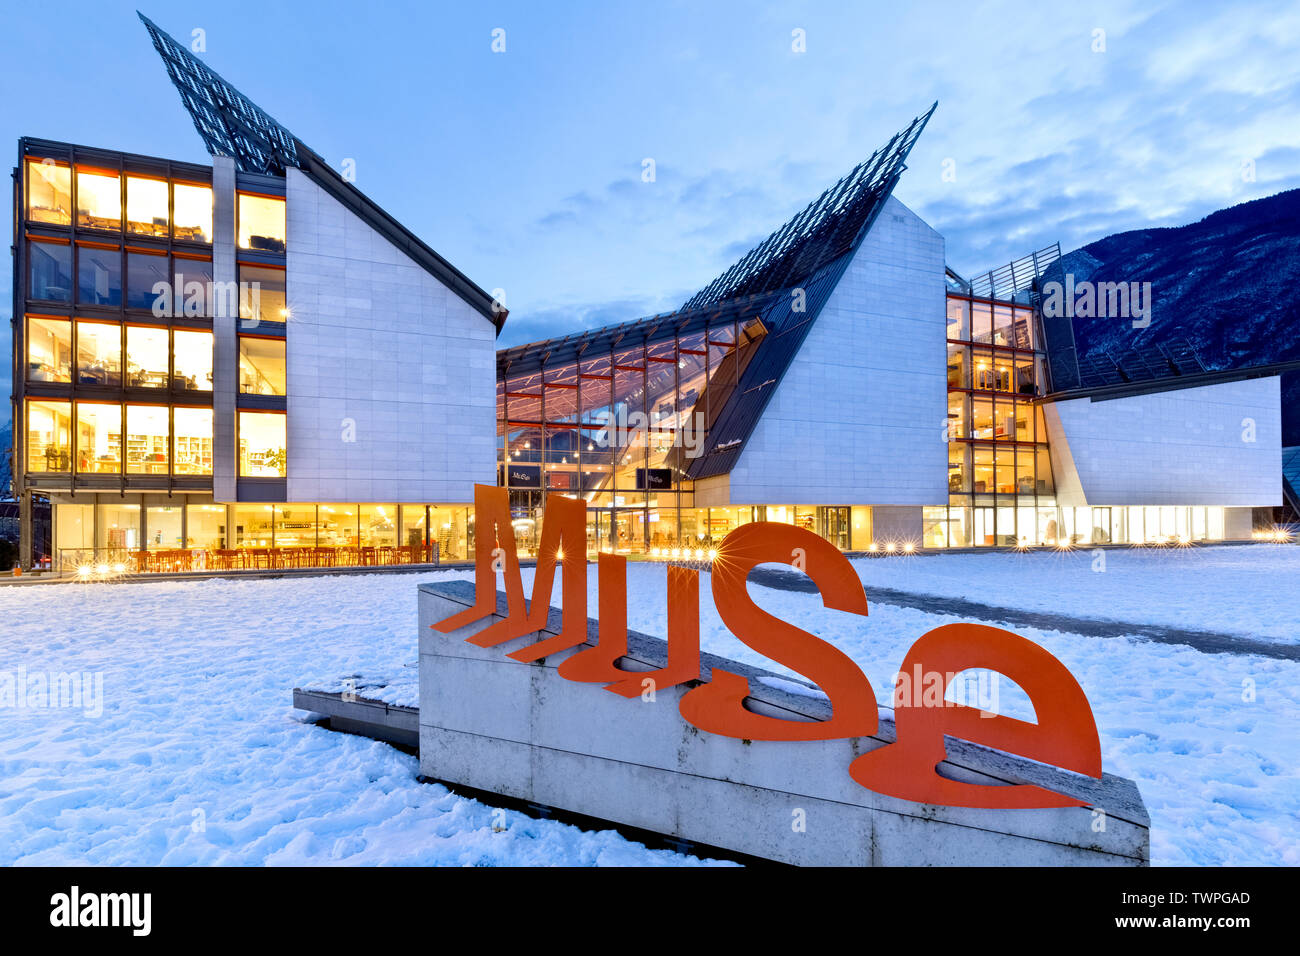 Entrance to the MUSE Science Museum in Trento. Trentino Alto-Adige, Italy, Europe. Stock Photo